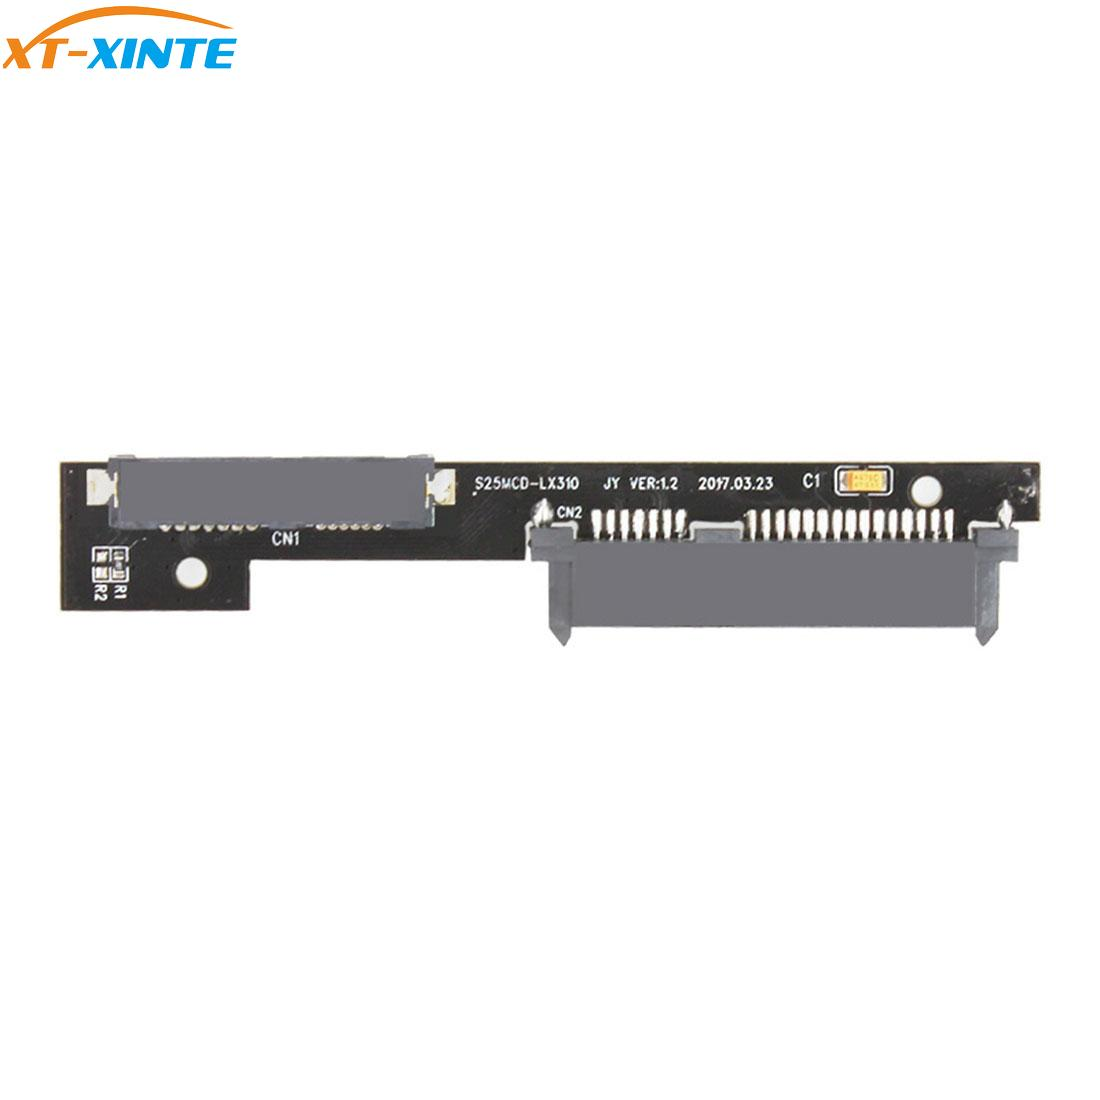 Pcb95 Pro SATA Caddy SATA3 Drive Bracket Pcb SATA TO Slim PCB For Optical Caddy For Lenovo 320 310 510 110 Series